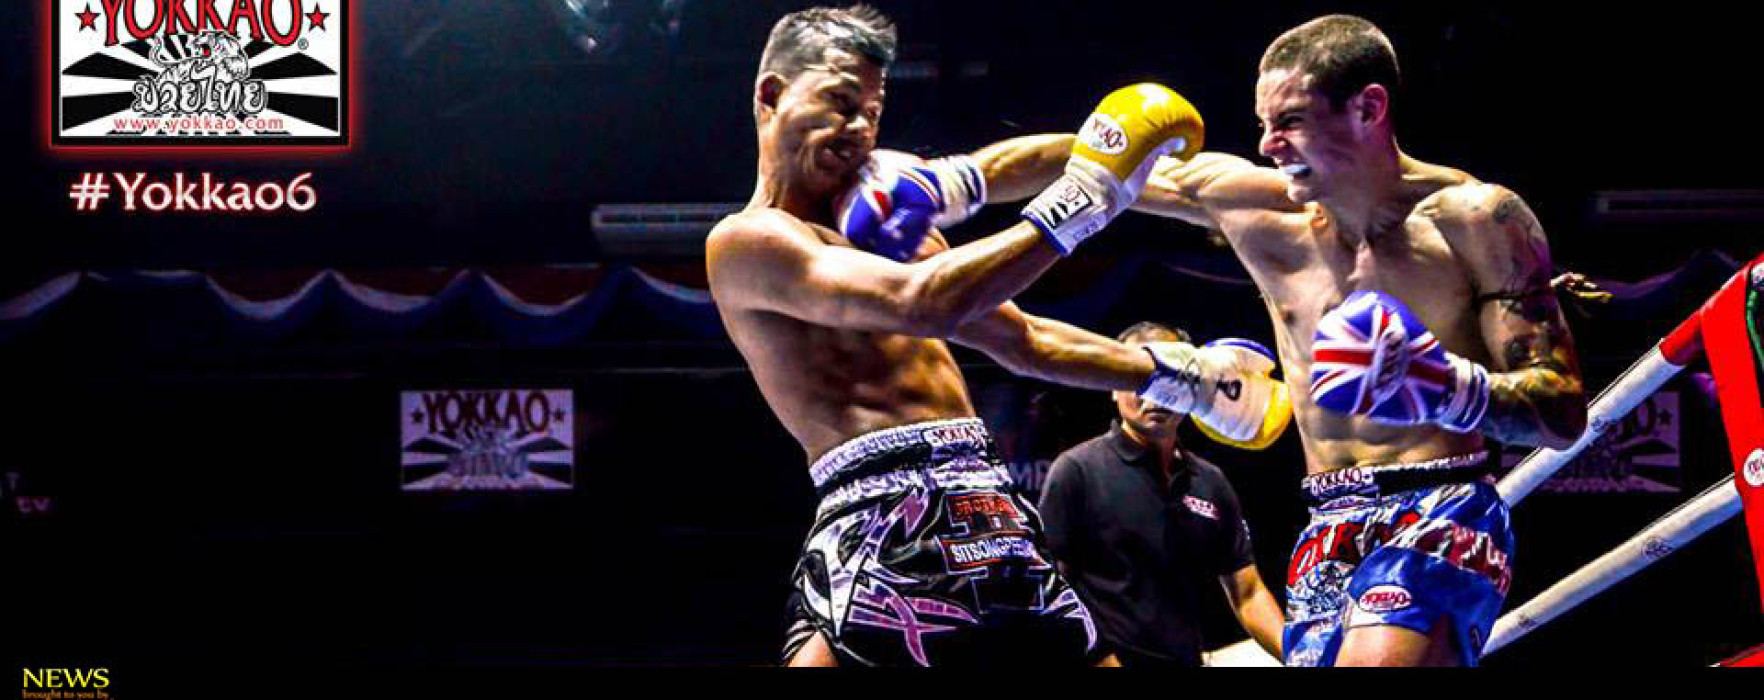 toby-smith-vs-thongchai-sitsongpeenong-yokkao-6-pattaya-boxing-muay-thai-world_-1764x700.jpg